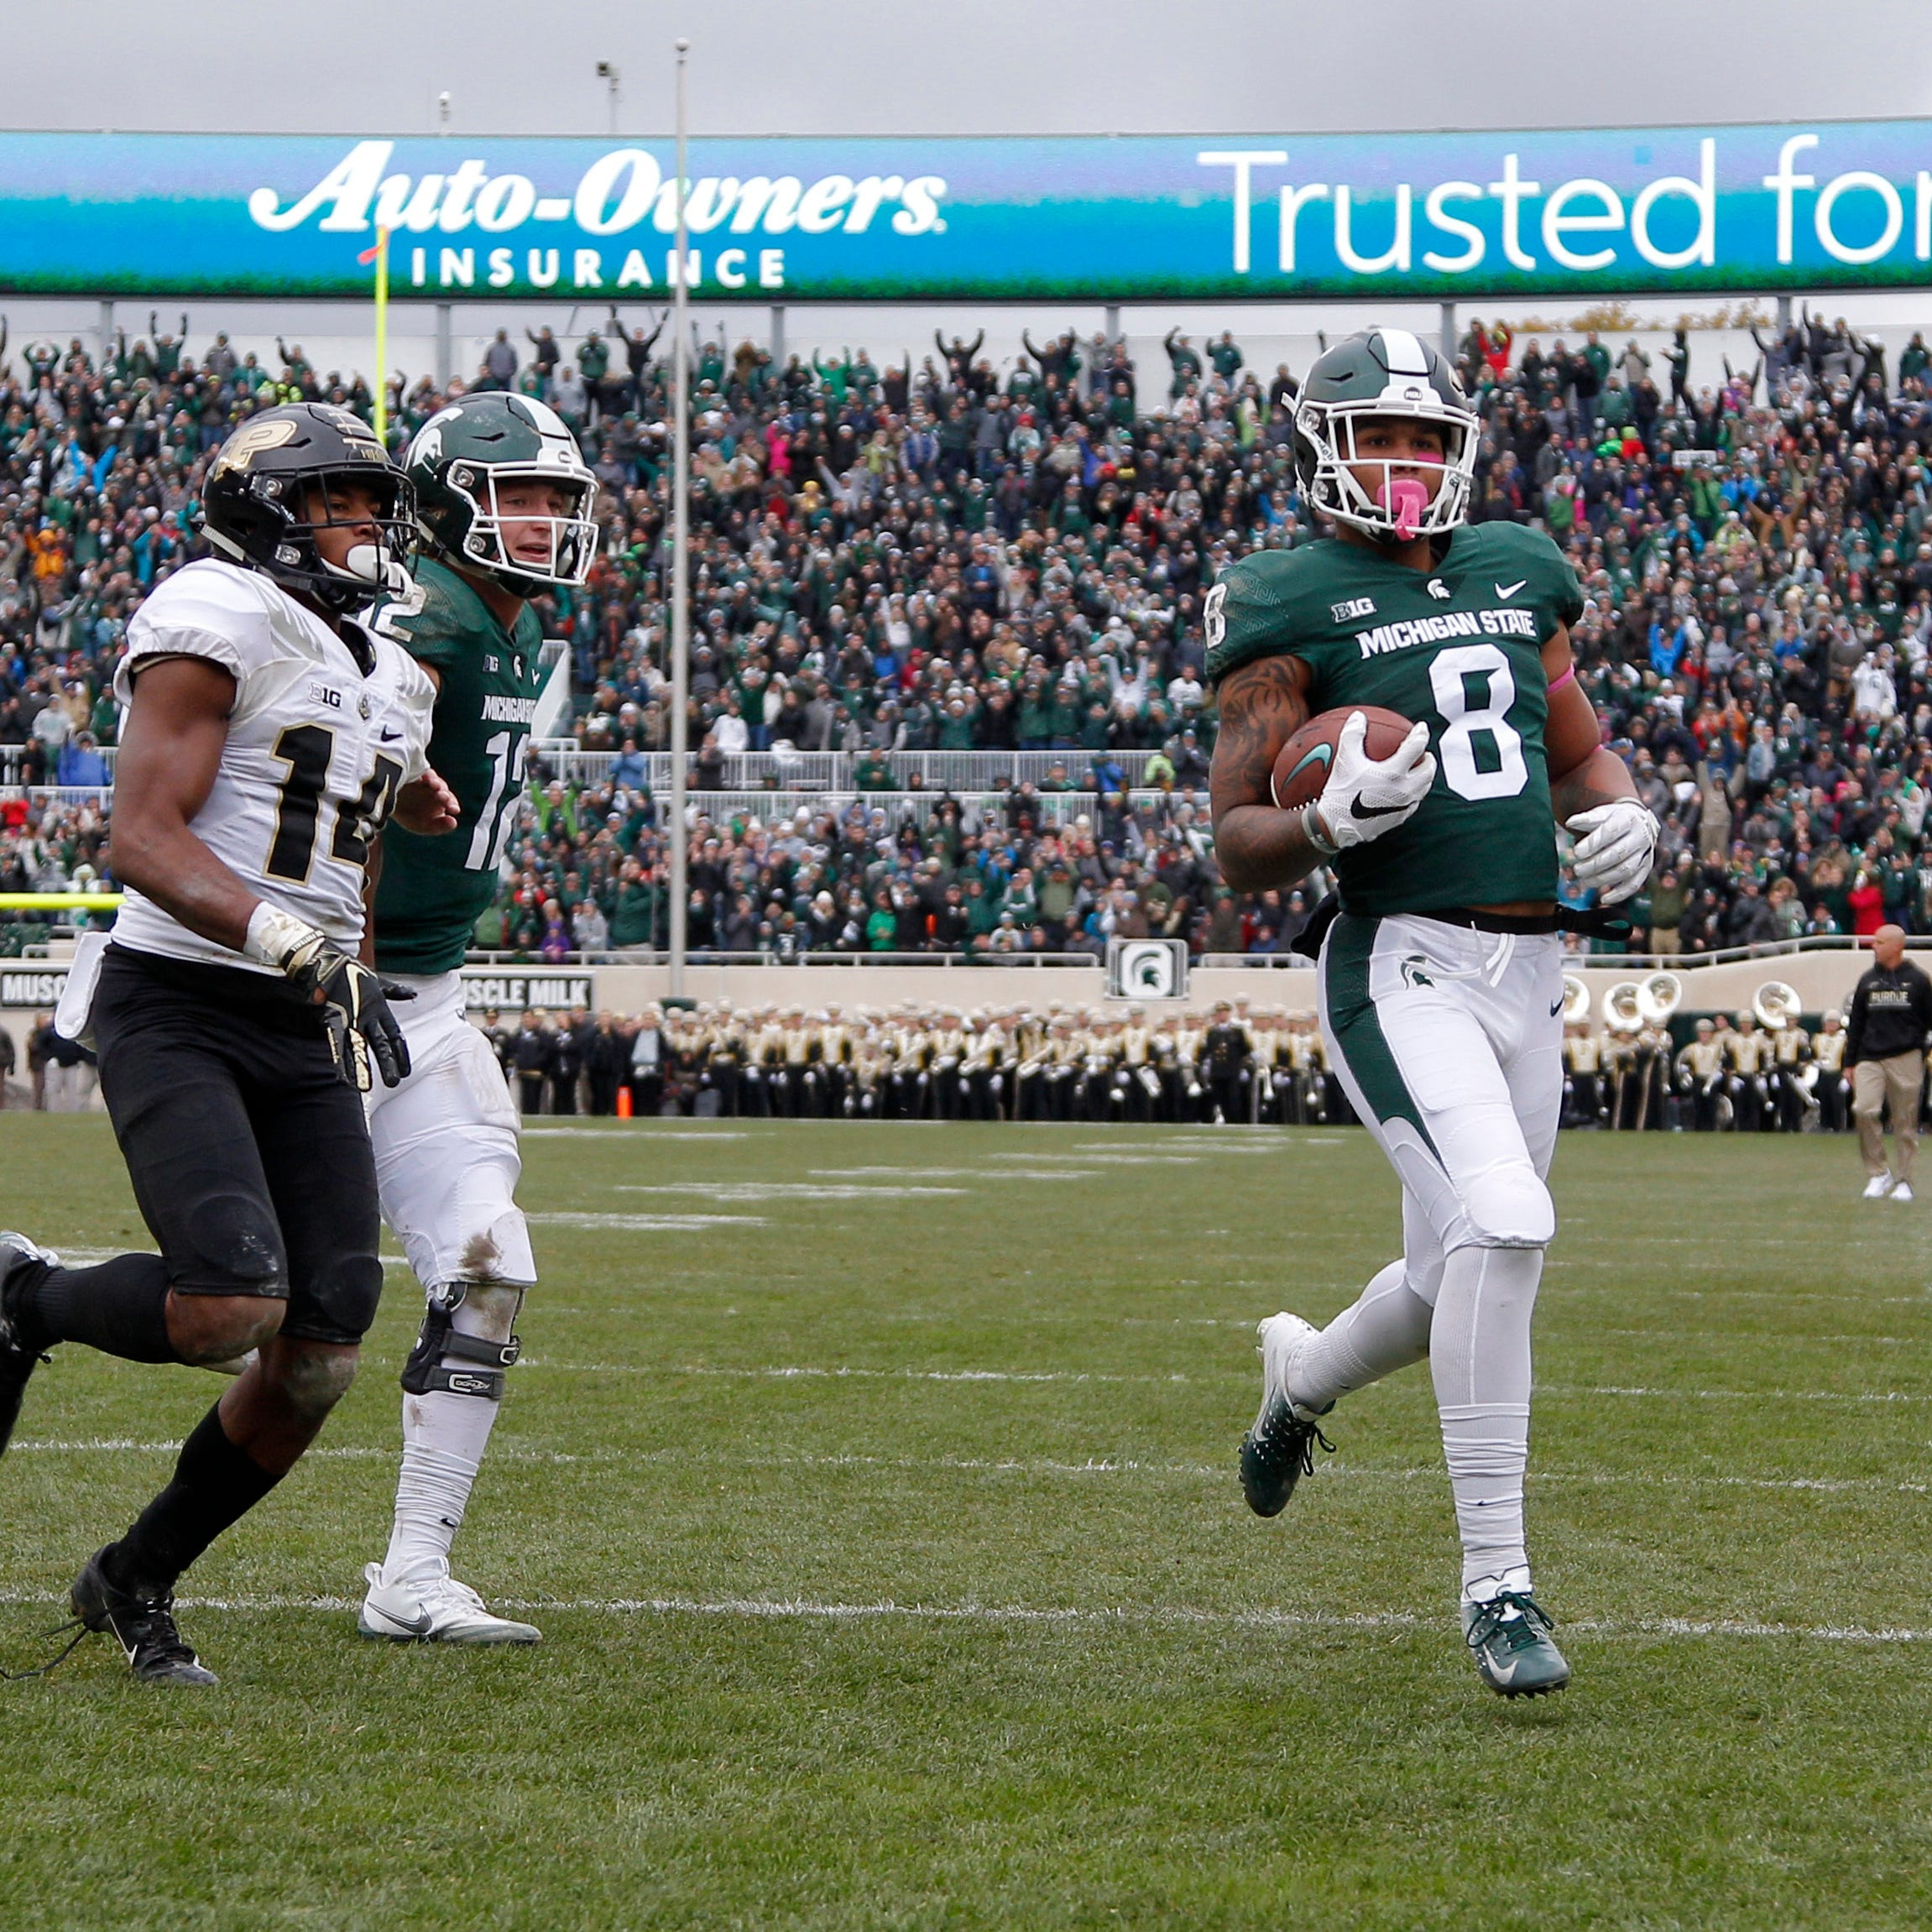 Michigan State's special teams need more from returners, health for punters